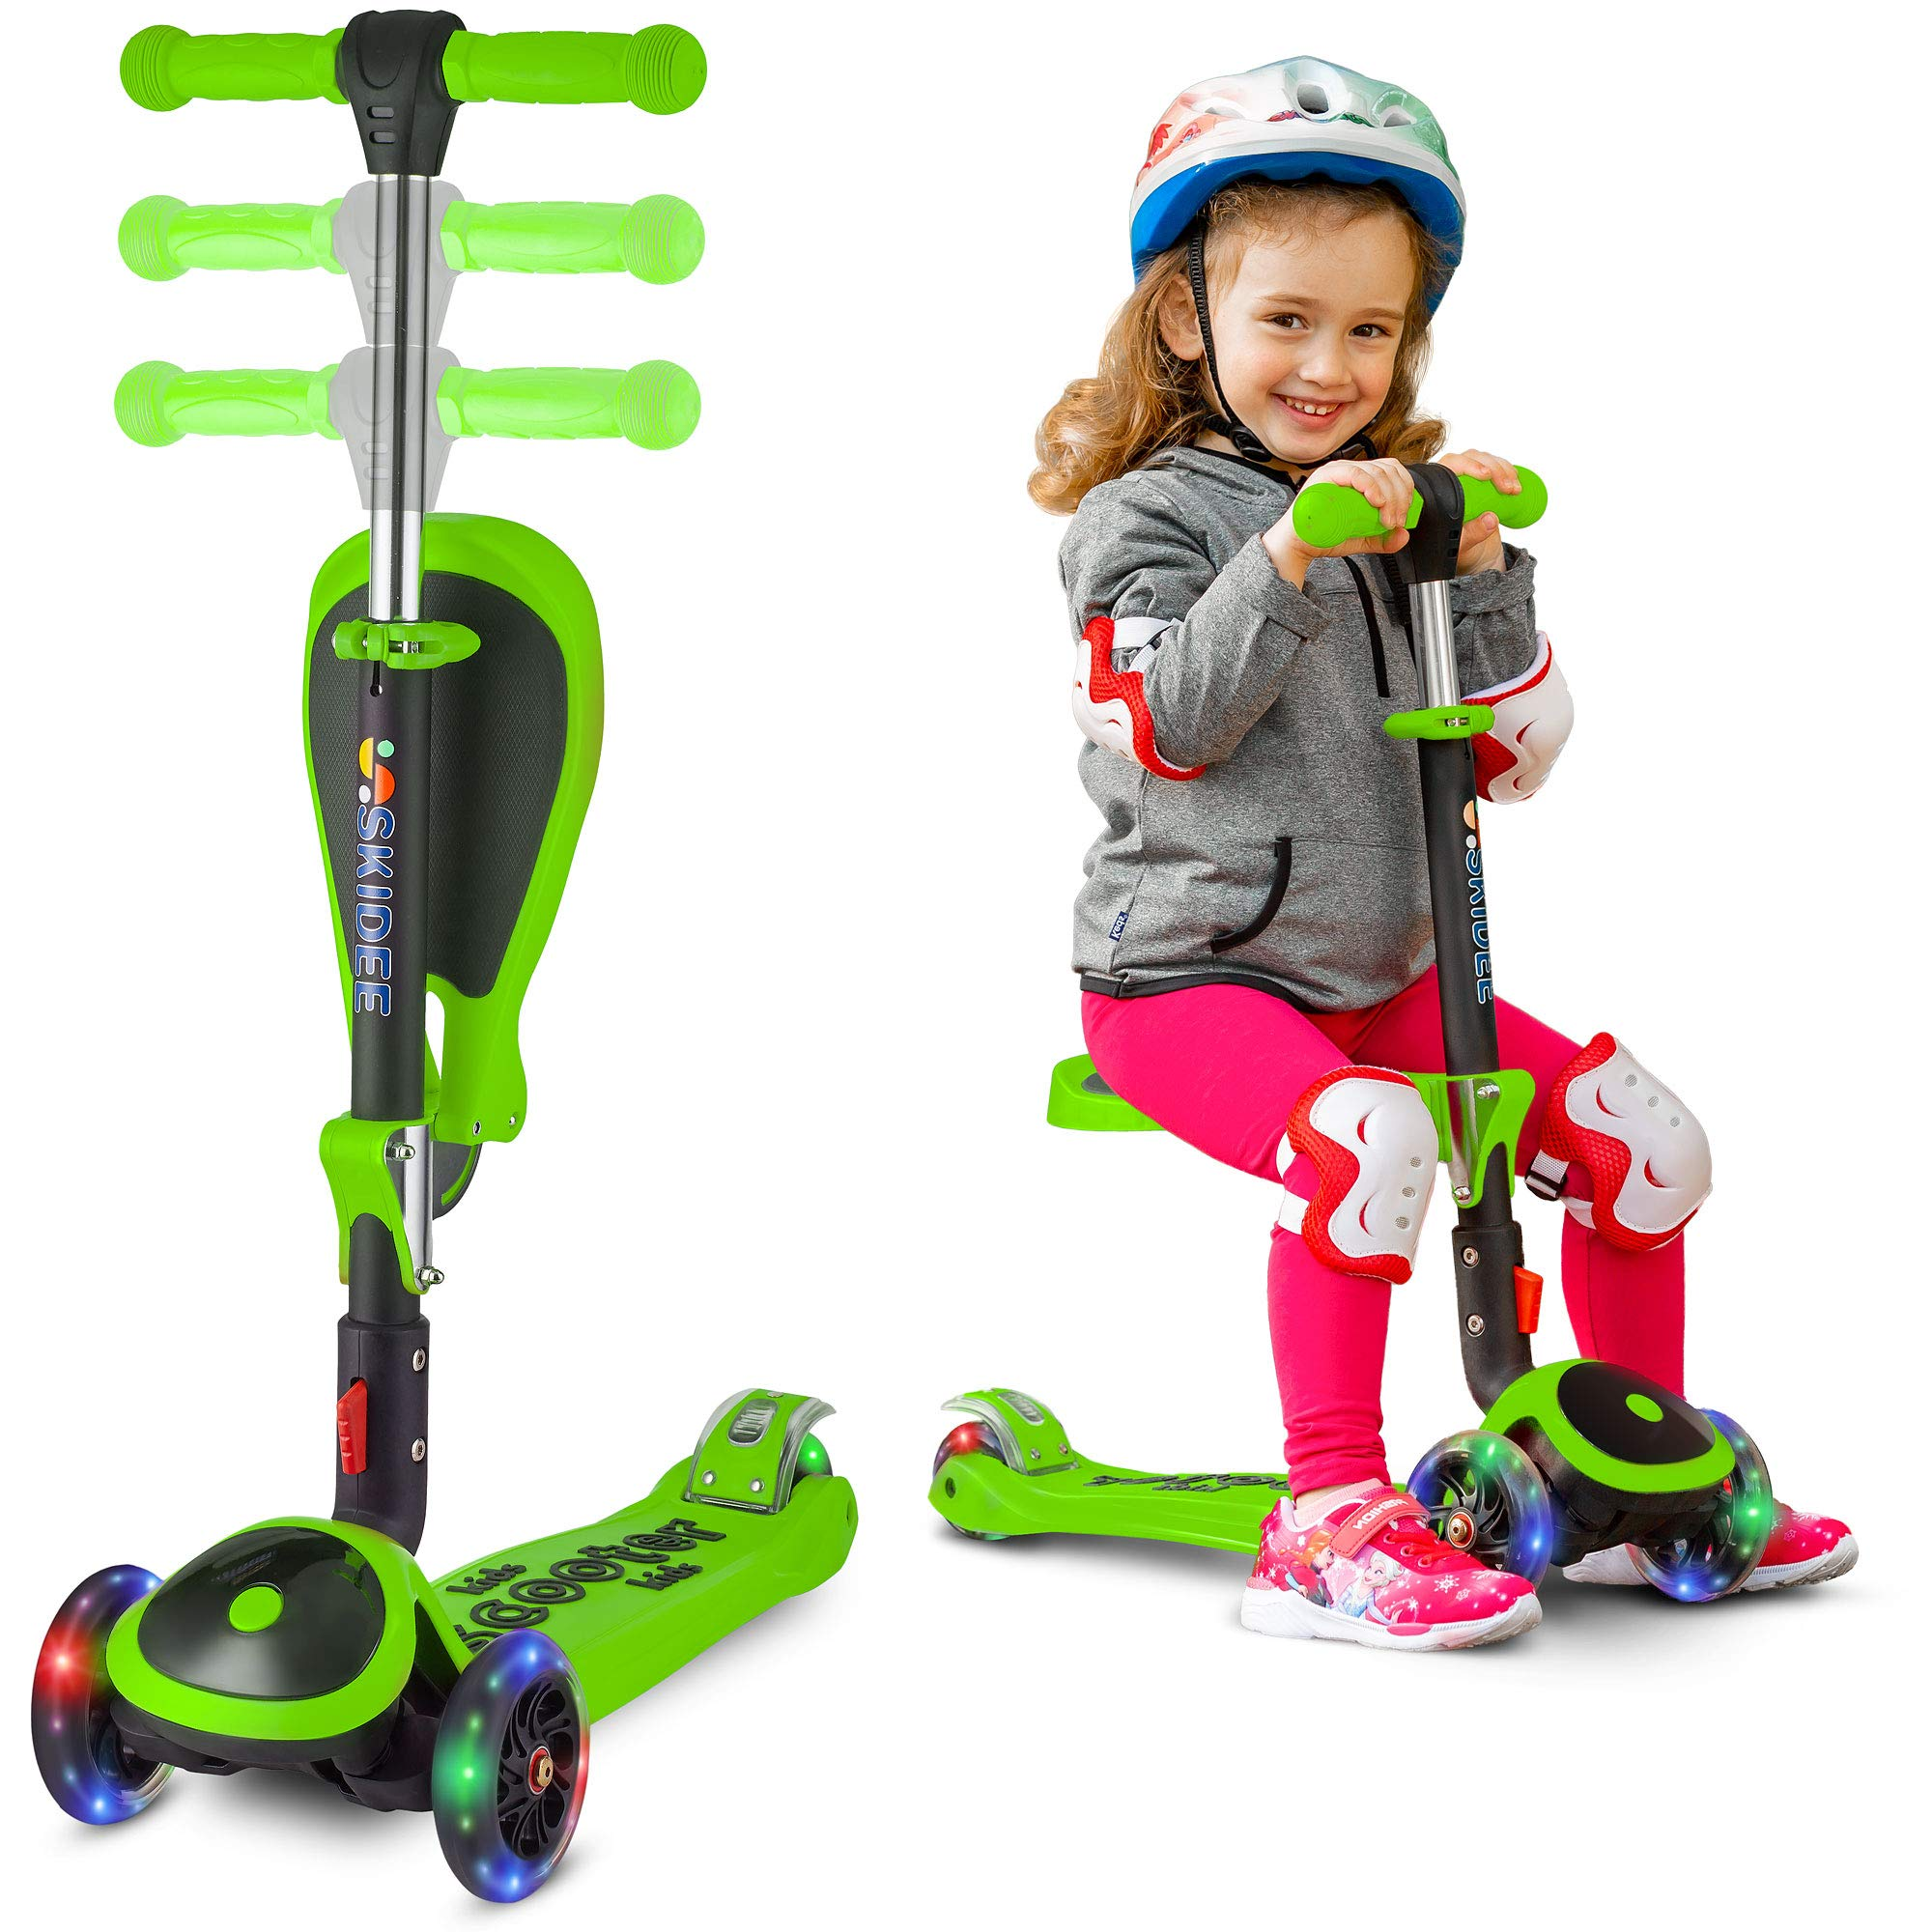 S SKIDEE Scooter for Kids with Folding Seat - 2-in-1Scooter for Kids with Folding/Removable Seat - 2 in 1 Adjustable Height, 3 LED Light Wheels, Kick Scooter for Girls & Boys (Green, Scooter)